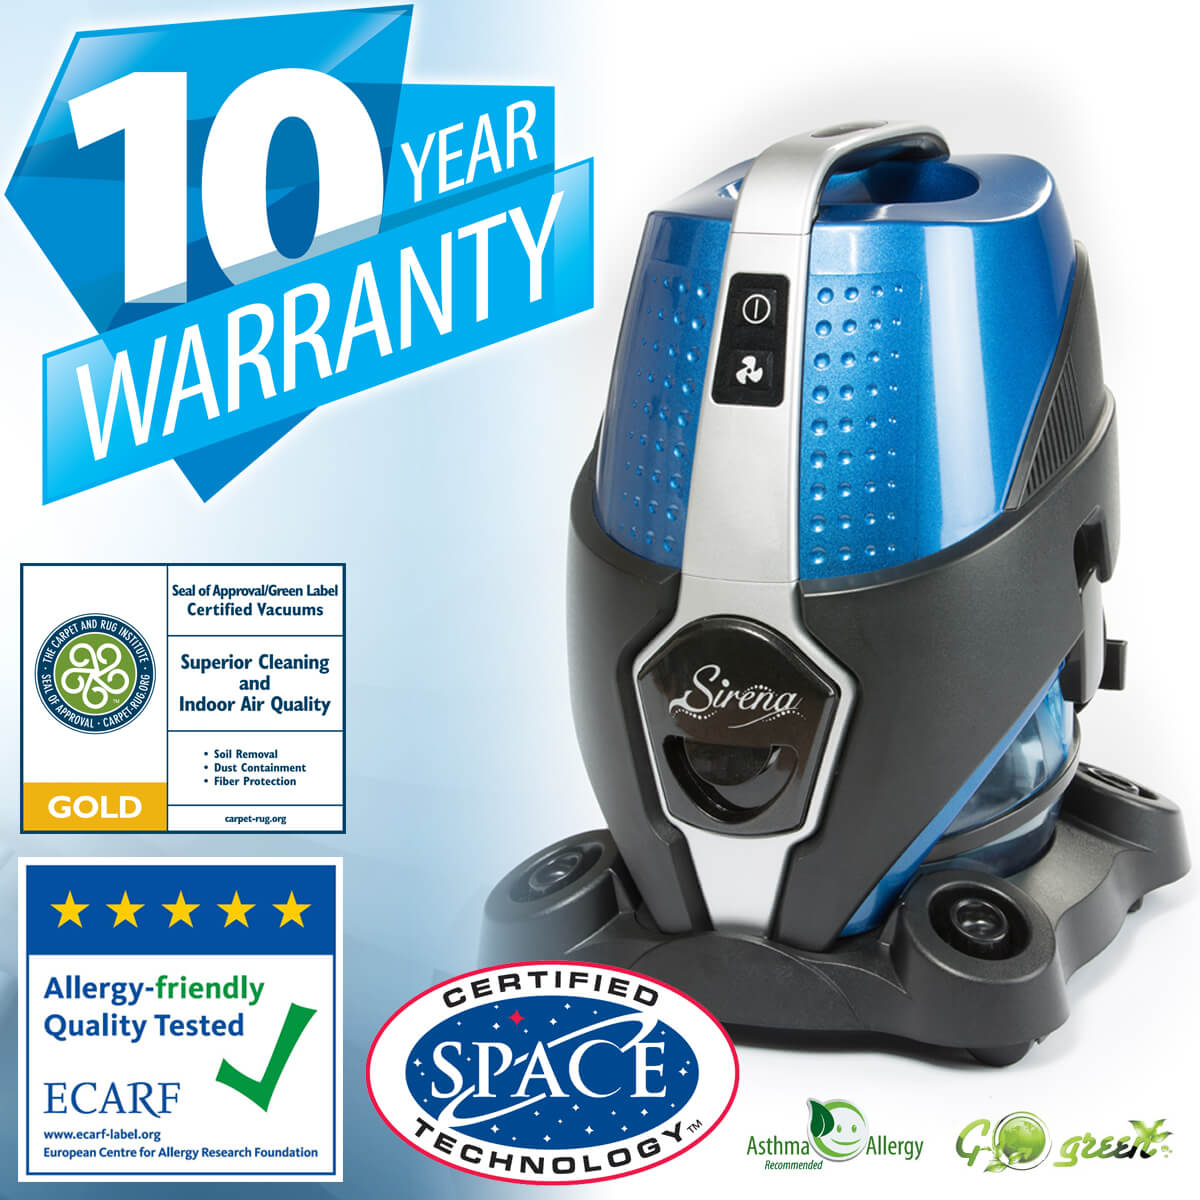 Sirena Vacuum Certifications and Warranty